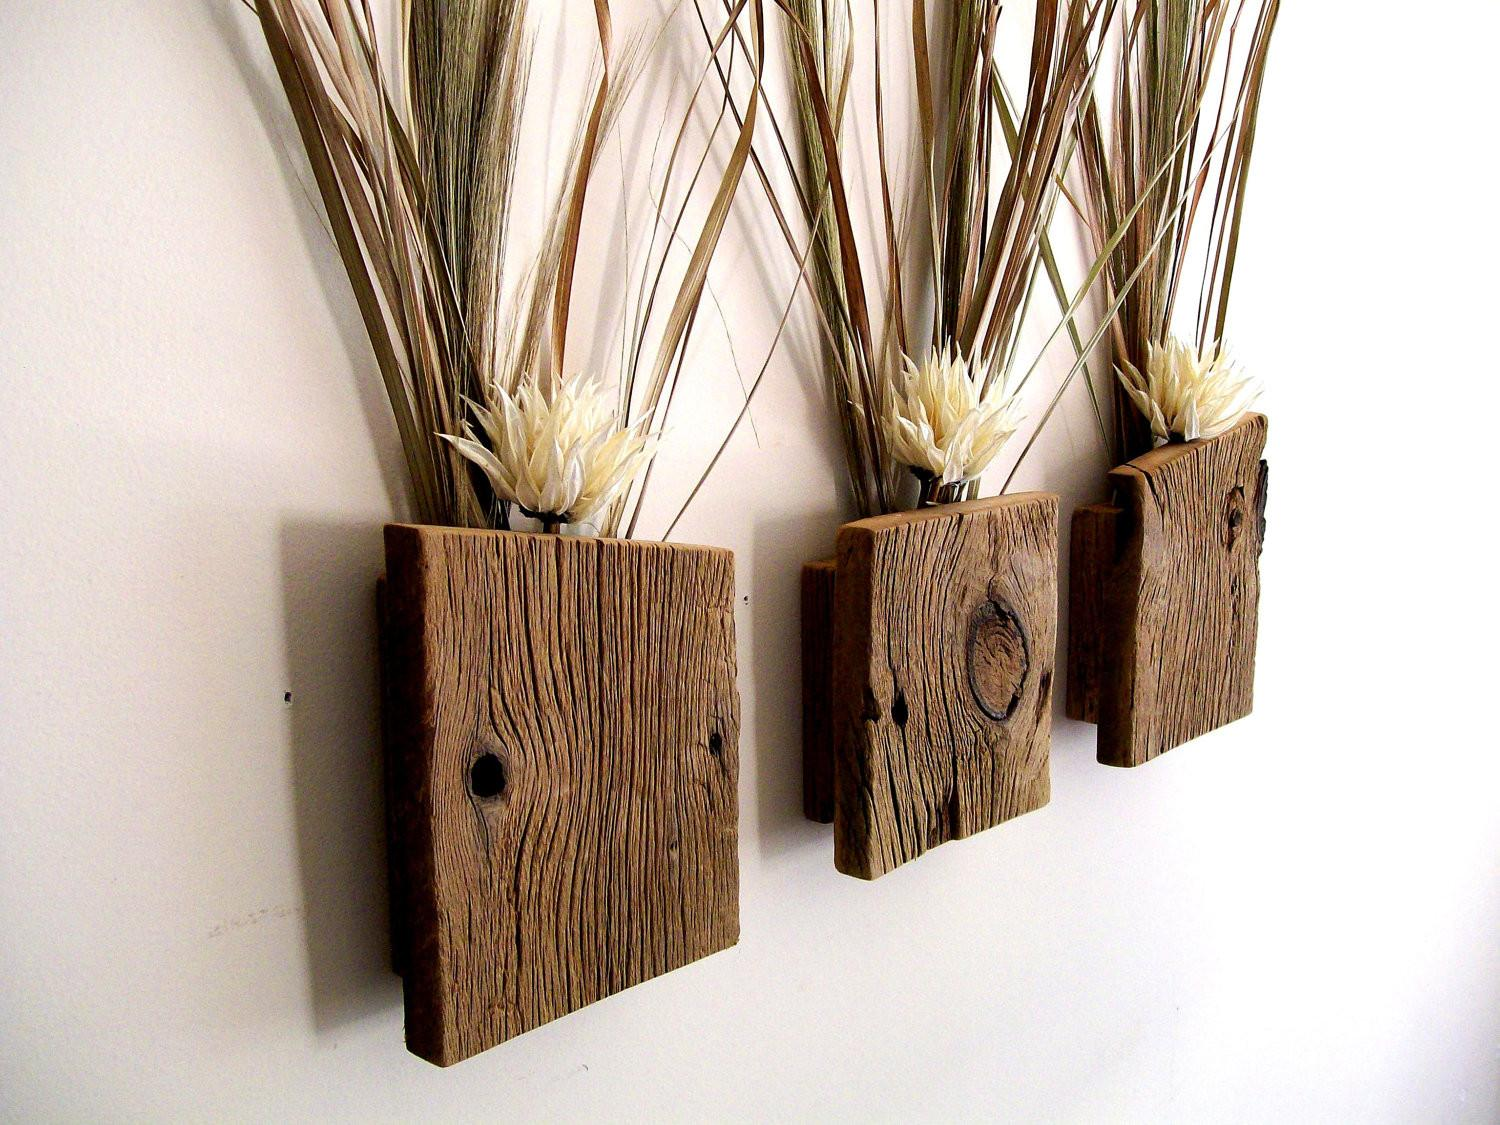 Set Rustic Reclaimed Barn Wood Wall Vase Flower